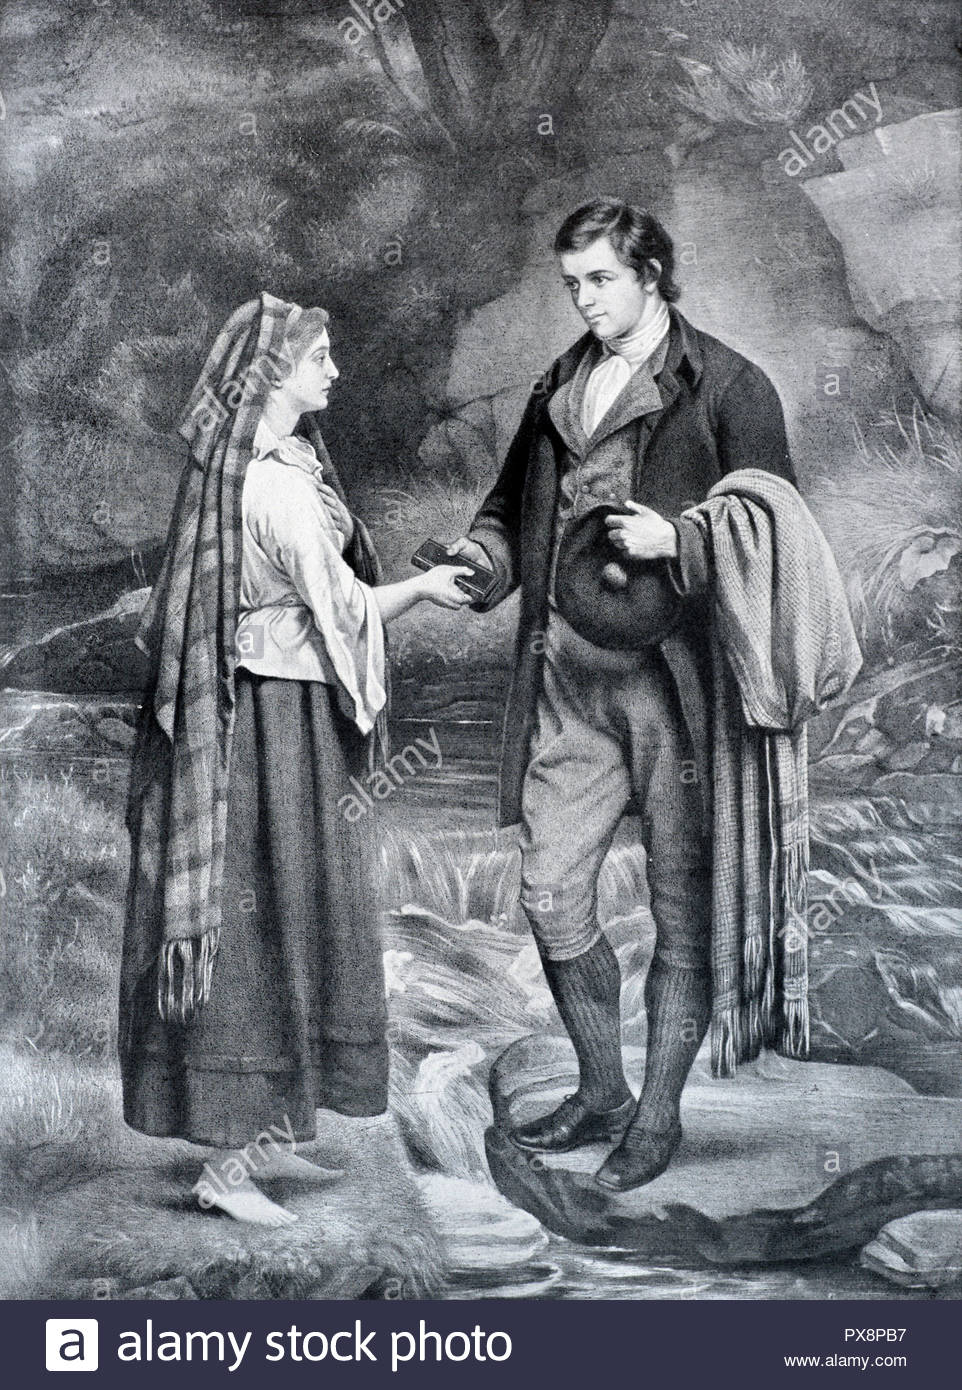 Robert Burns and and Mary Campbell exchanging vows on the banks of the River Ayr in 1785, where each gave the other a bible, illustration from 1922 - Stock Image